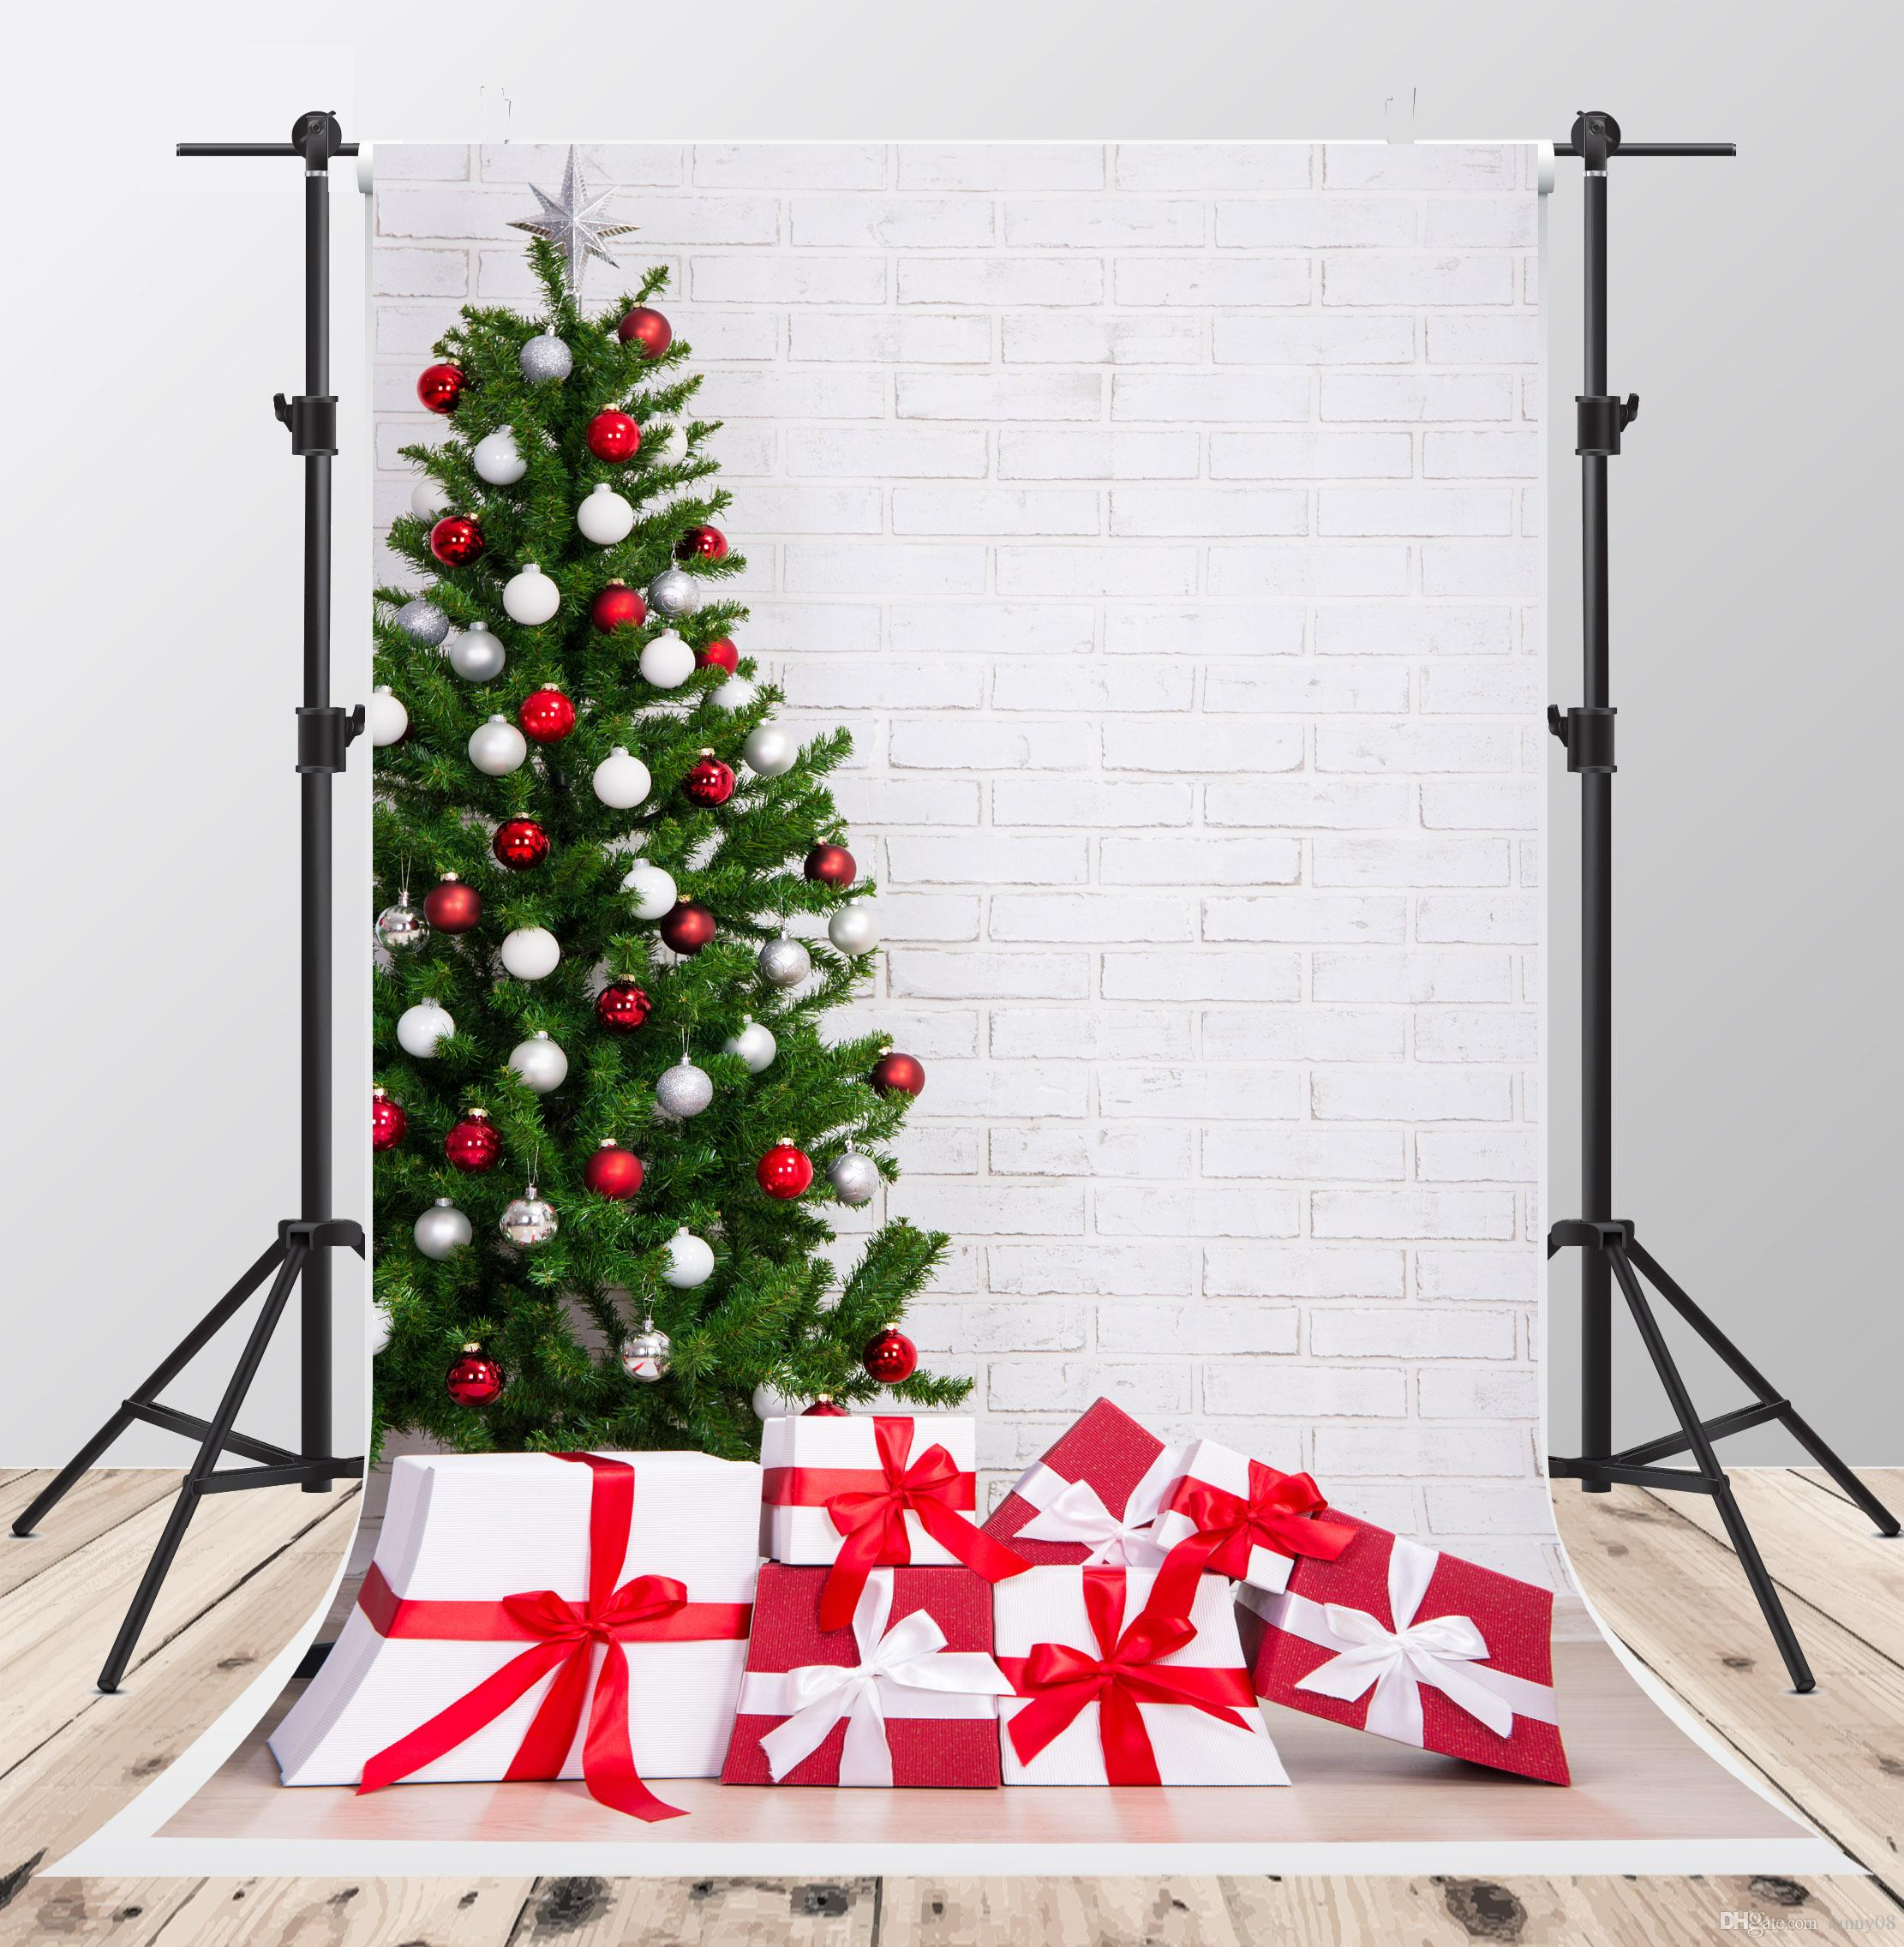 Christmas Tree Backgrounds.2019 Christmas Backgrounds For Photo Studio 5x7ft Backdrops Christmas Tree Box Backdrop Shooting From Fanny08 24 73 Dhgate Com